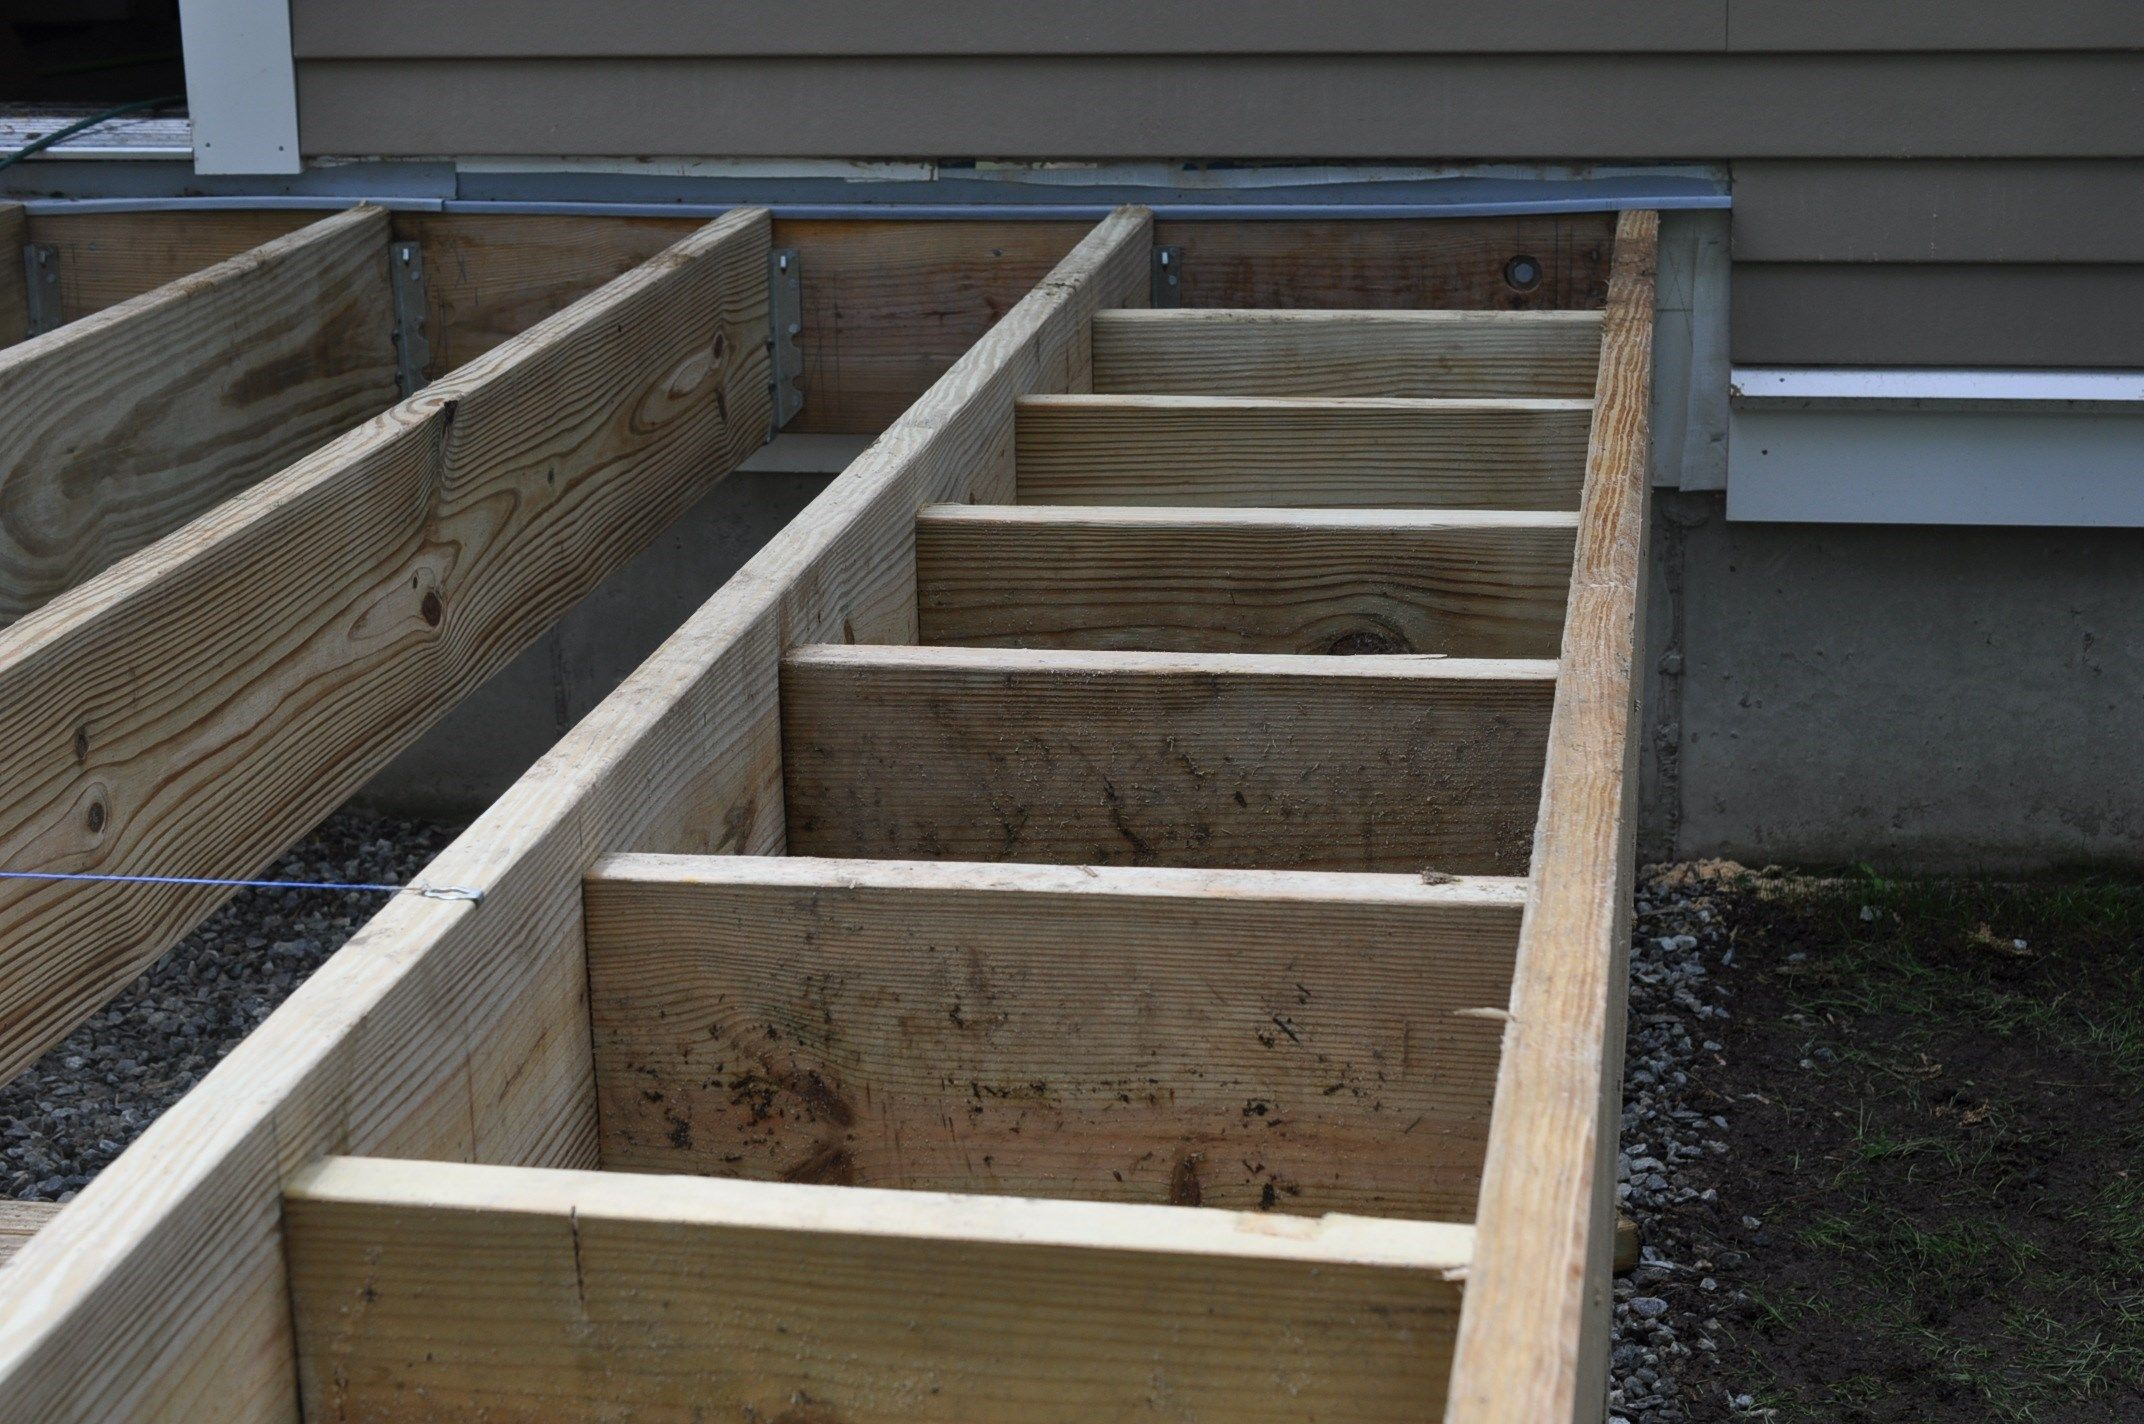 Treated Wood Deck Framing Rules Get Tougher  JLC Online